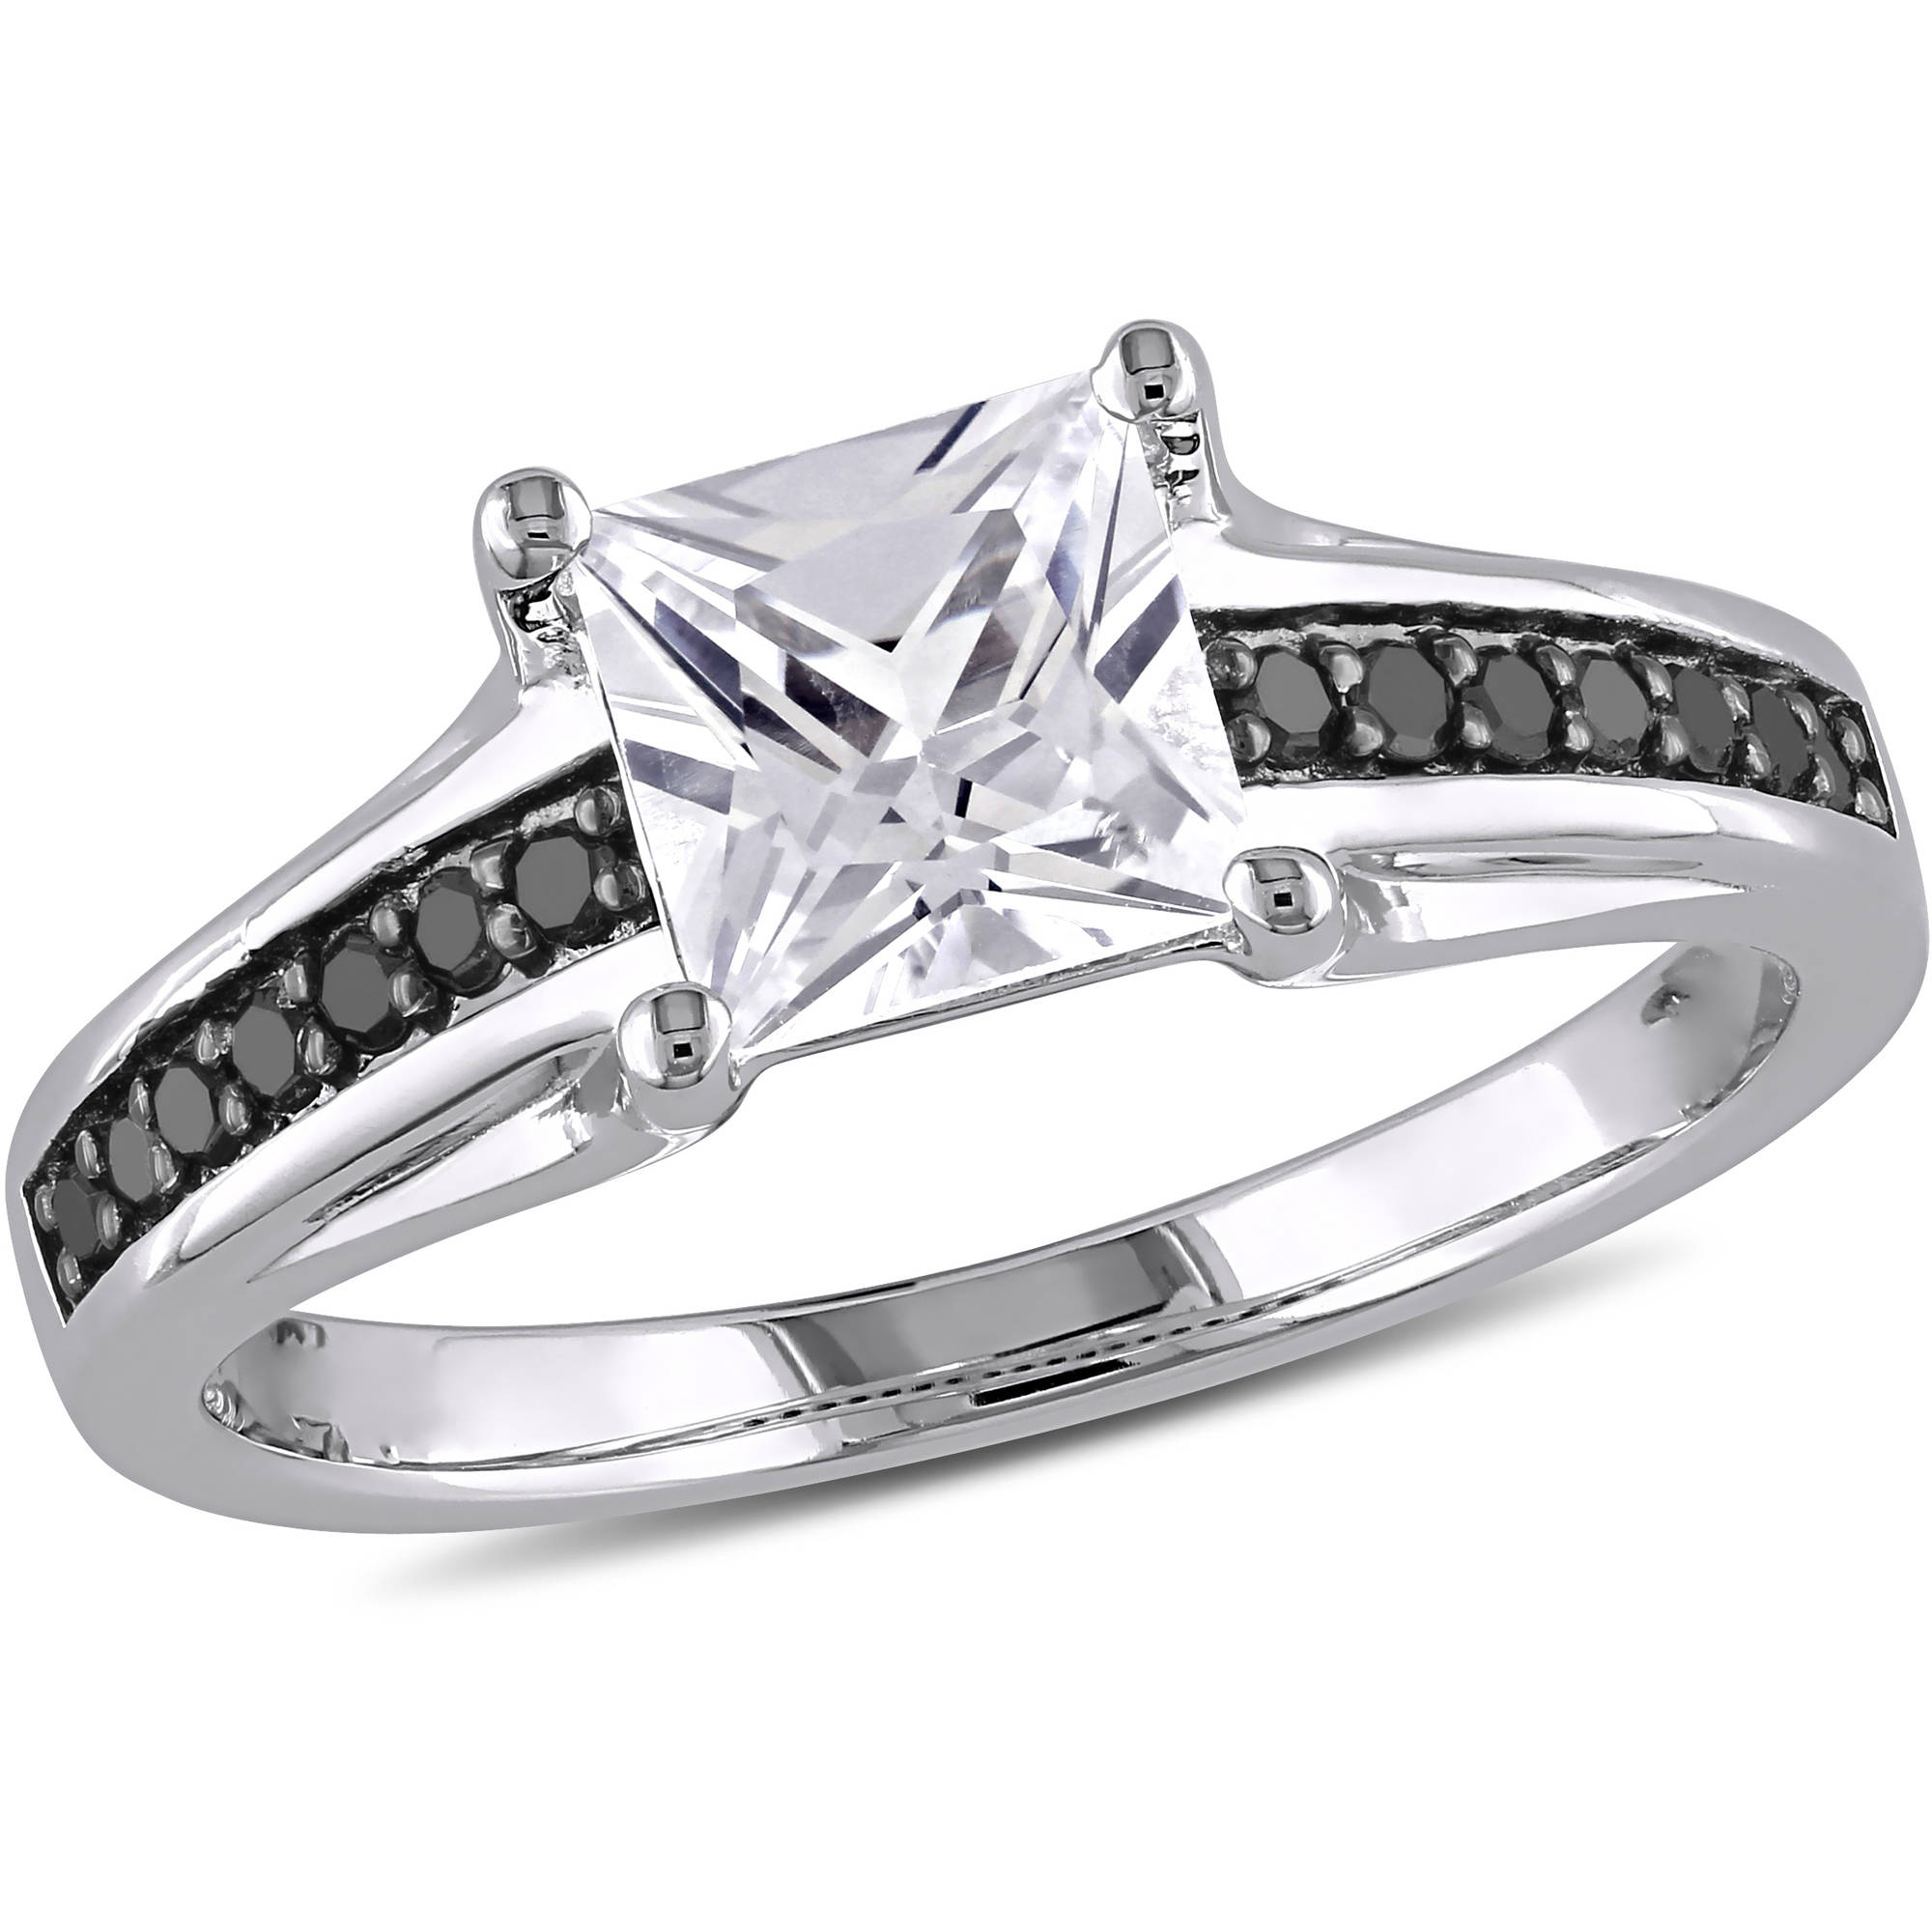 1-1/3 Carat T.G.W. Created White Sapphire and 1/7 Carat T.W. Black Diamond Sterling Silver Engagement Ring